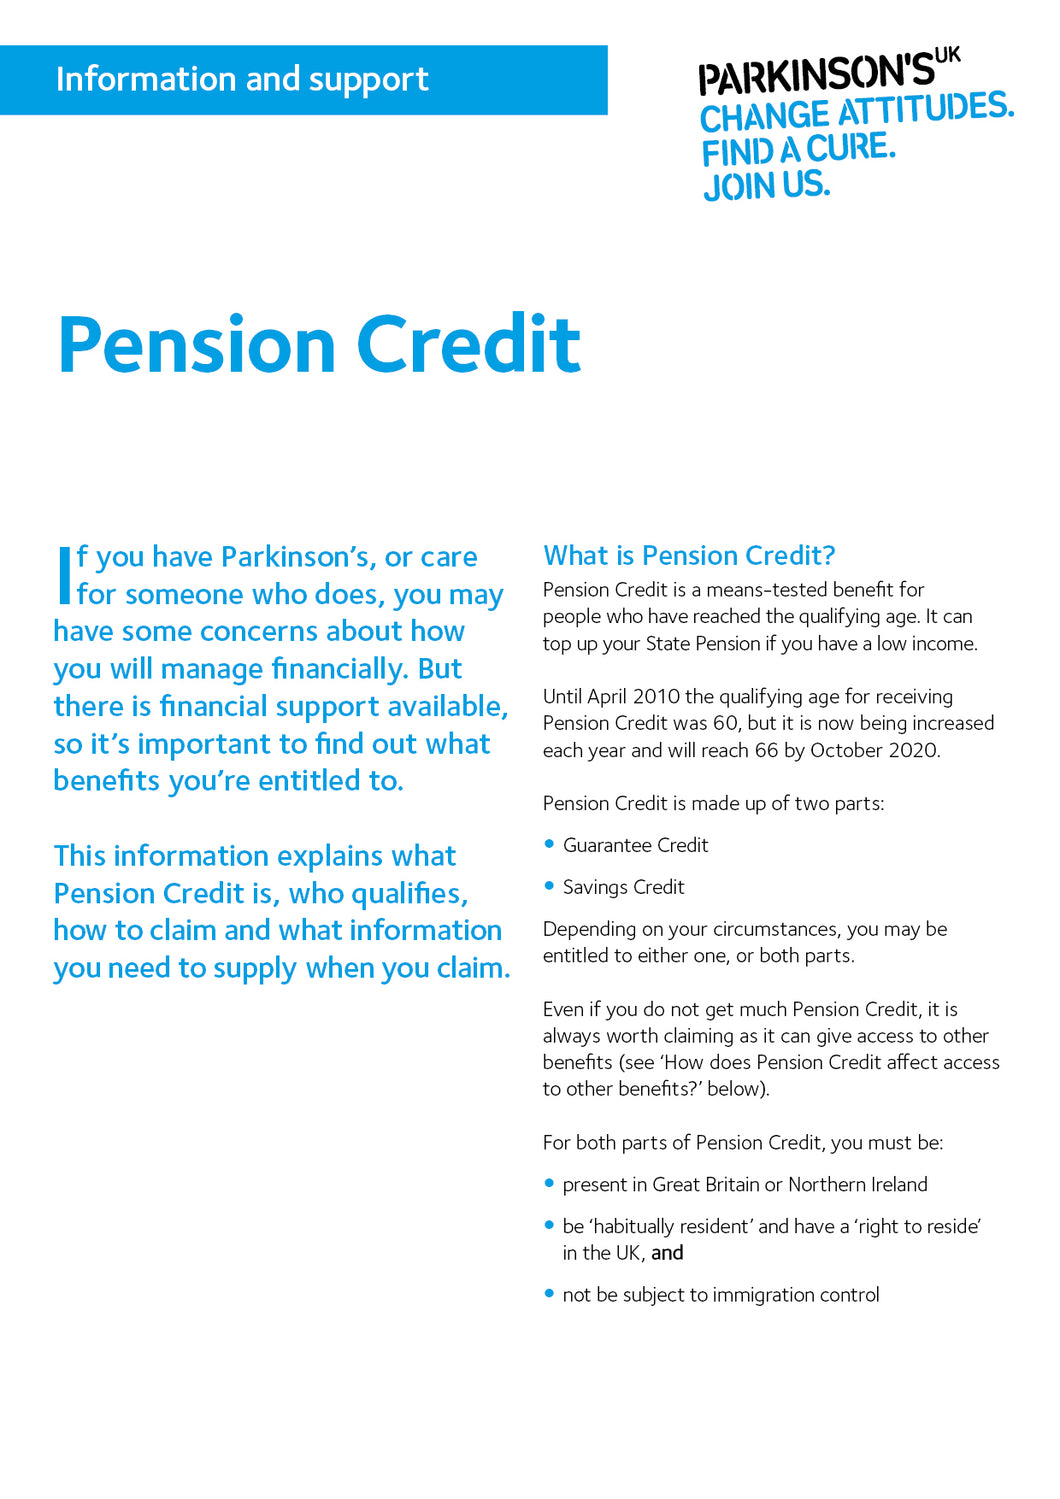 Pension Credit - Parkinson's shop